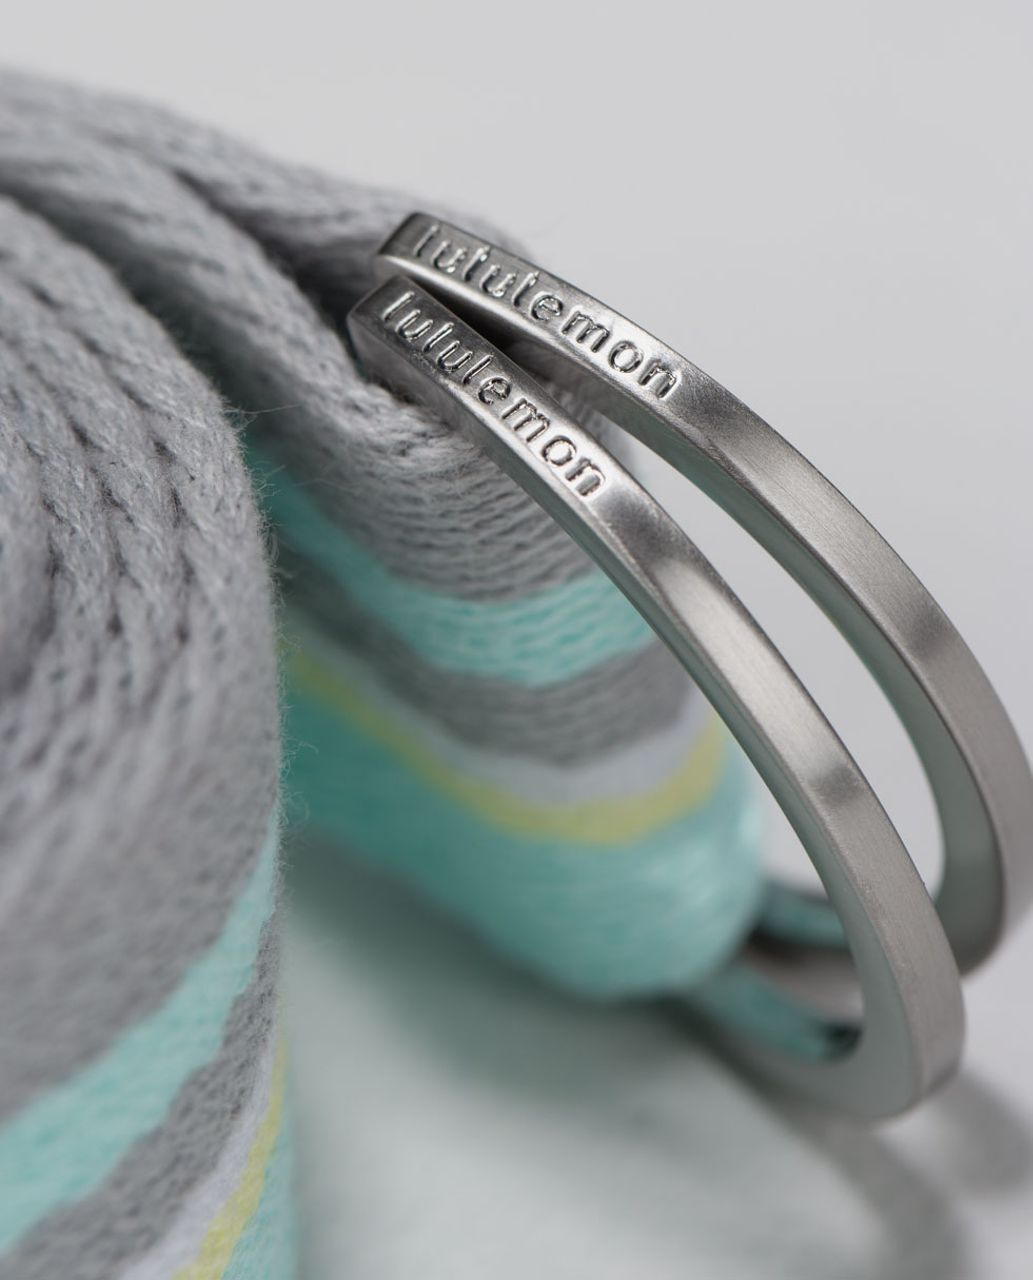 Lululemon No Limits Stretching Strap - Aqua / Zest / White / Silver Spoon / Aquamarine